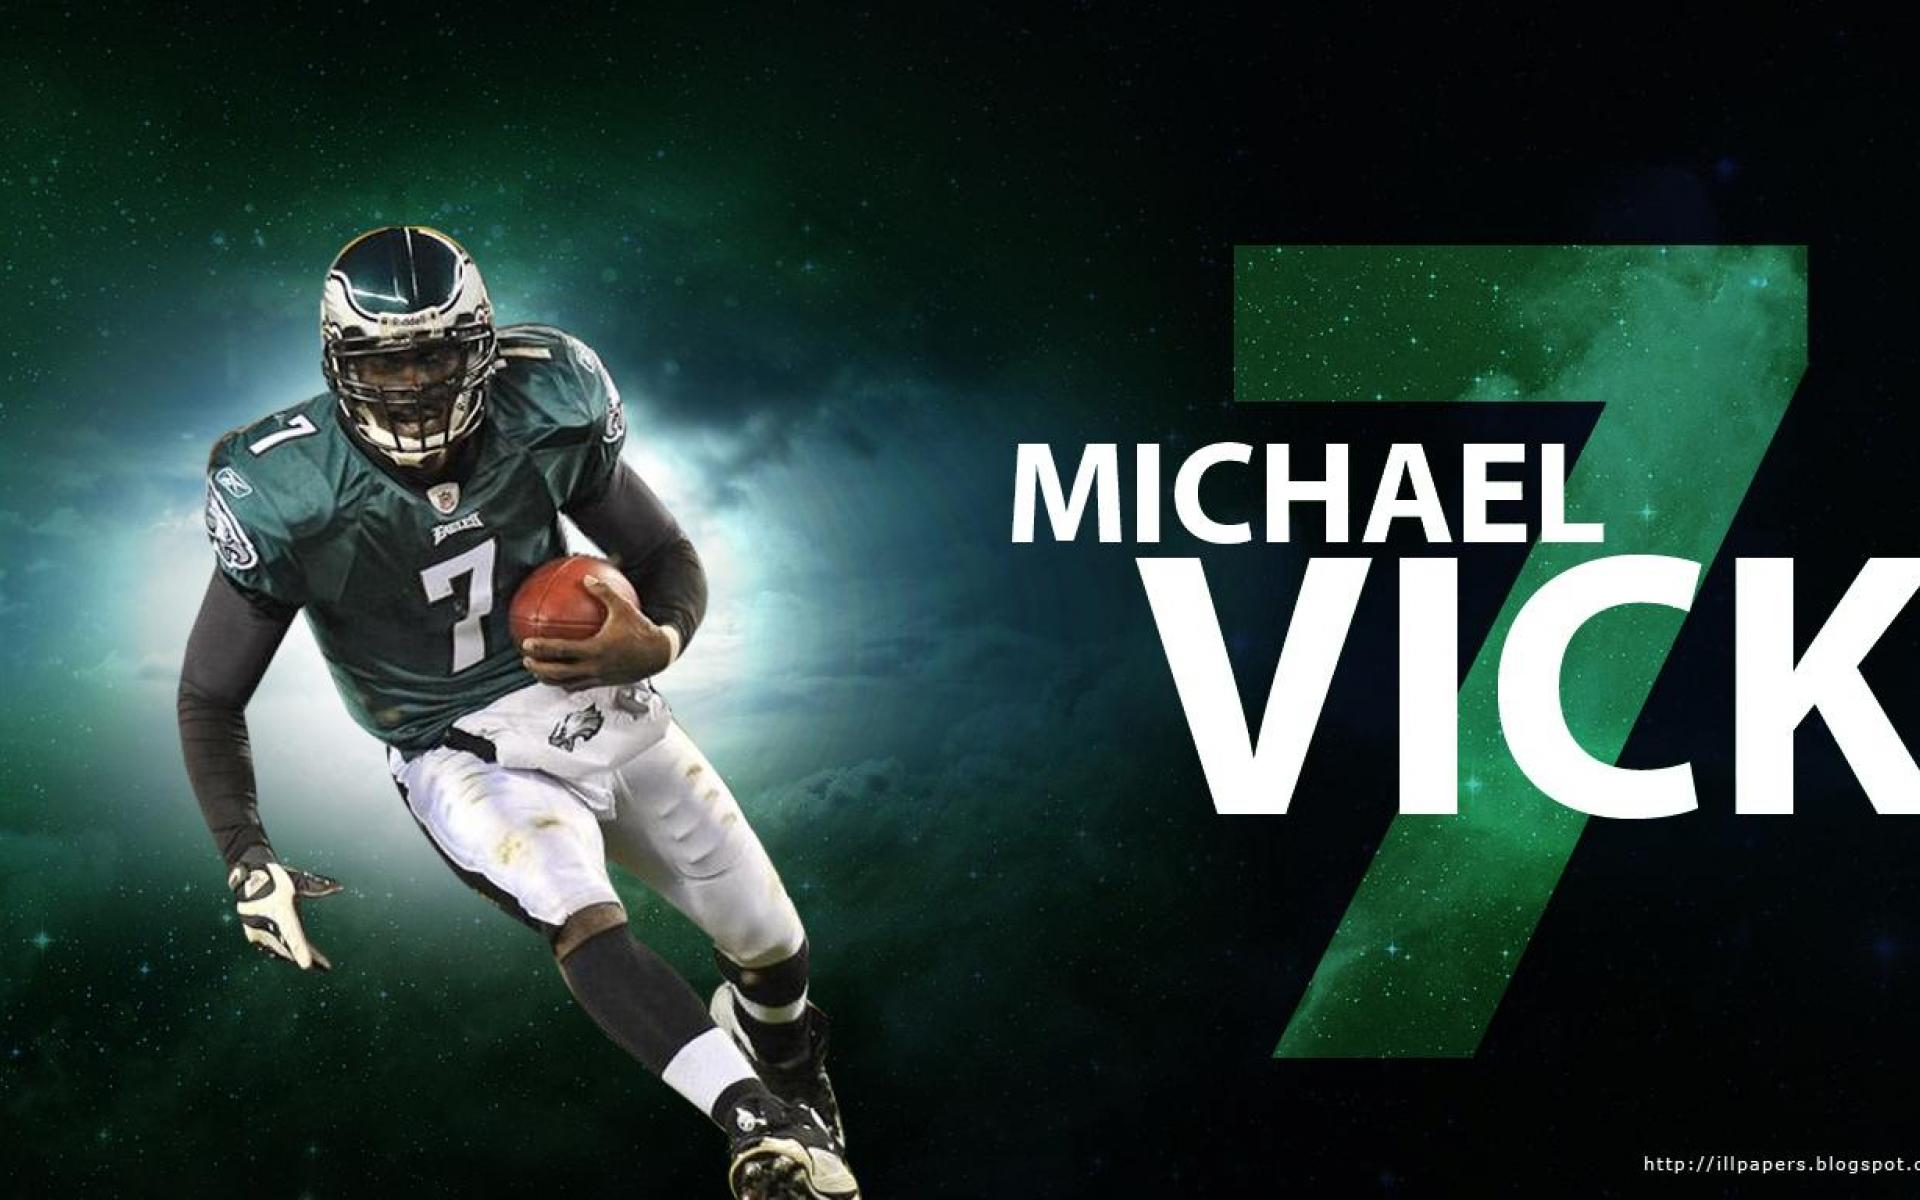 PHILADELPHIA EAGLES nfl football g wallpaper background 1920x1200